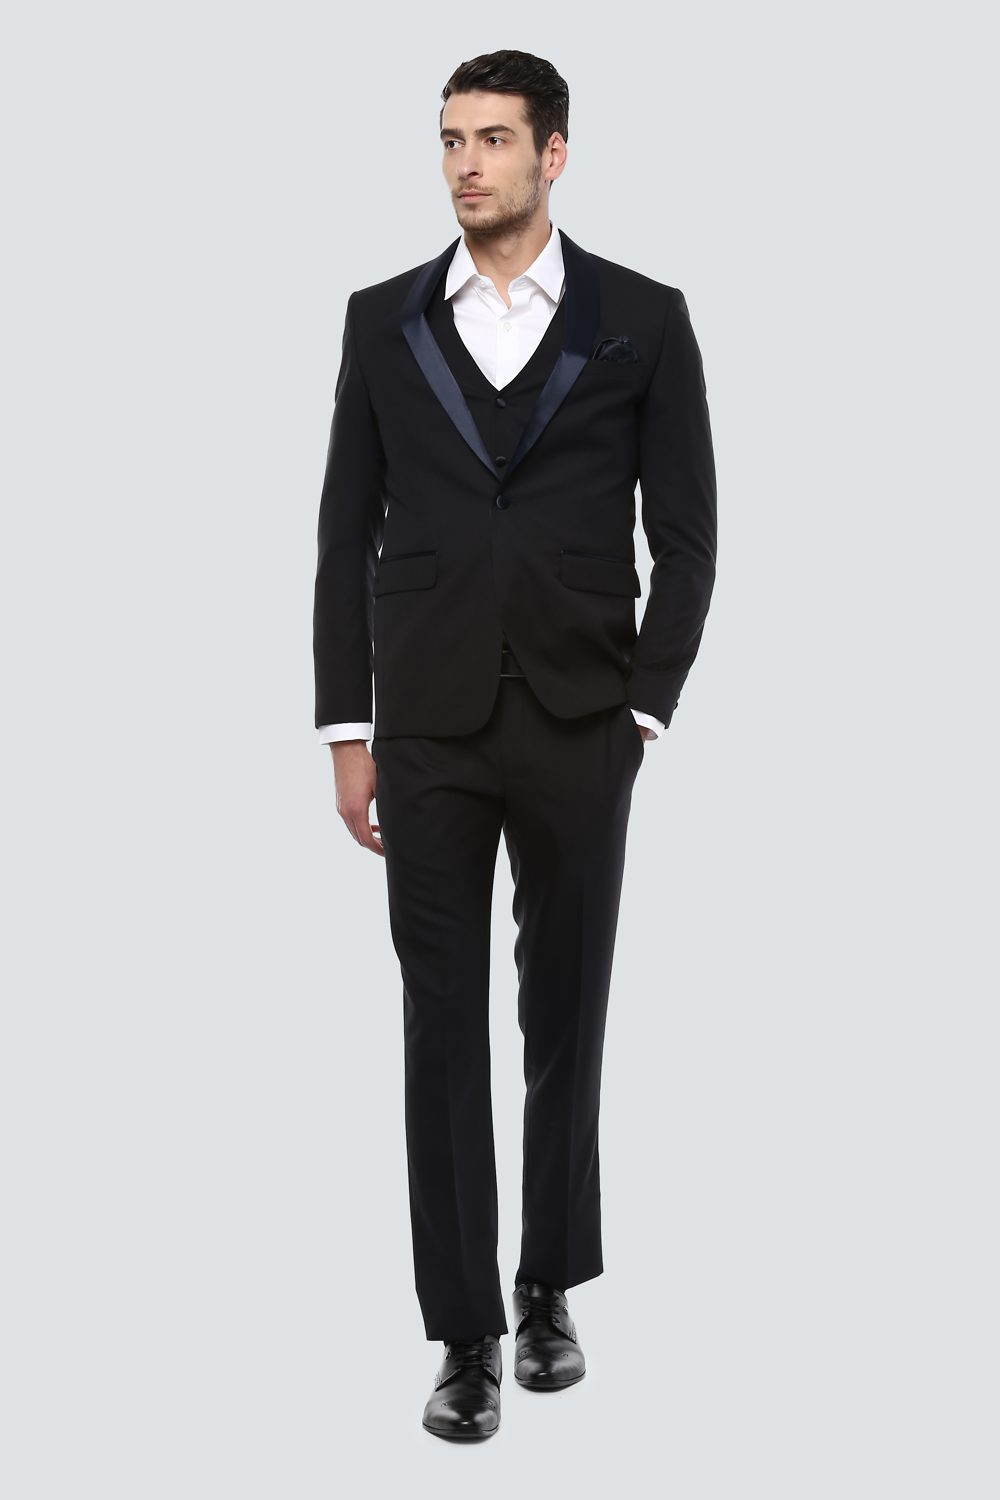 cc41f4db7639 Louis Philippe Suits & Blazers, Louis Philippe Navy Three Piece Suit for  Men at Louisphilippe.com